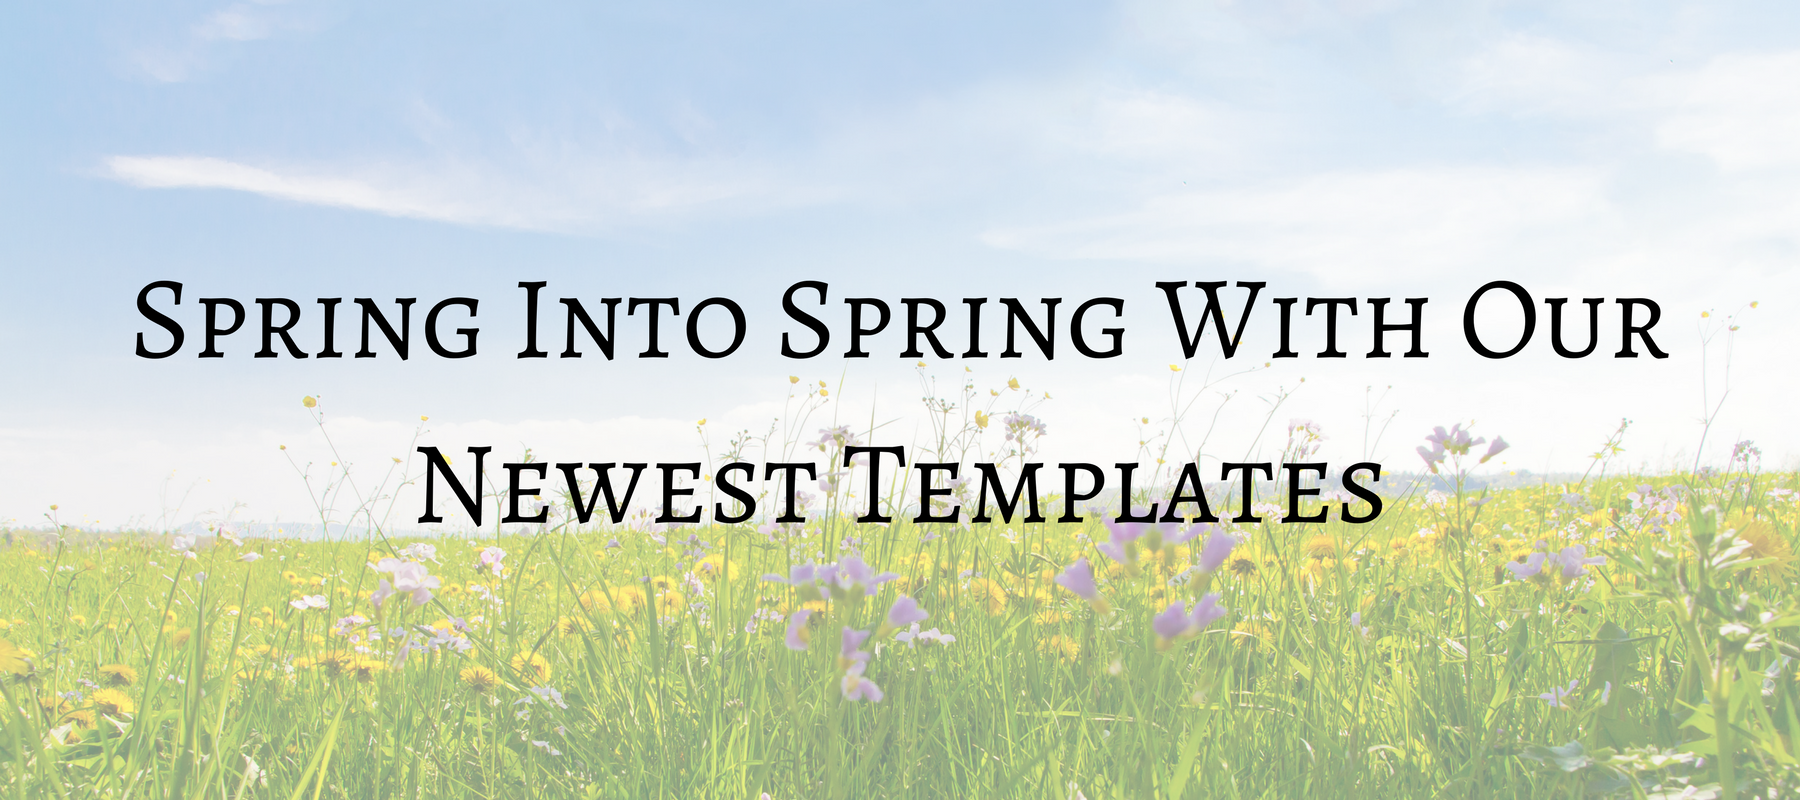 Spring Into Spring With Our Newest Templates